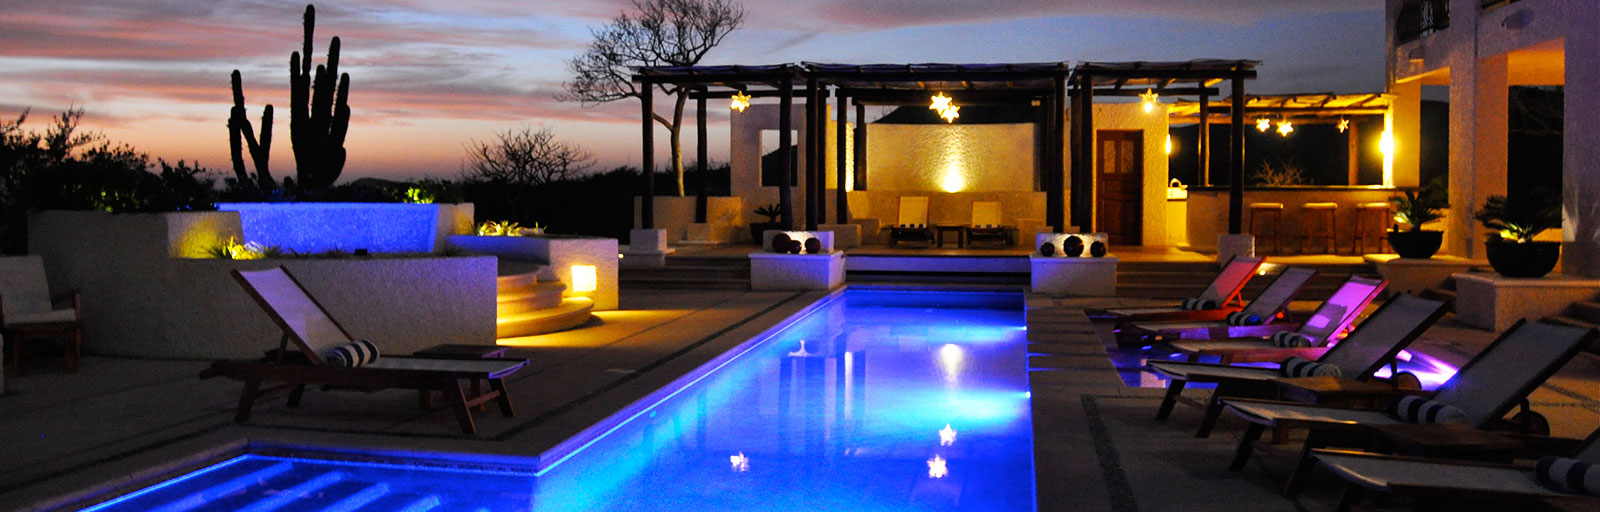 Spa & Yoga Retreat in Mexico: Swimming Pool Lit at Night